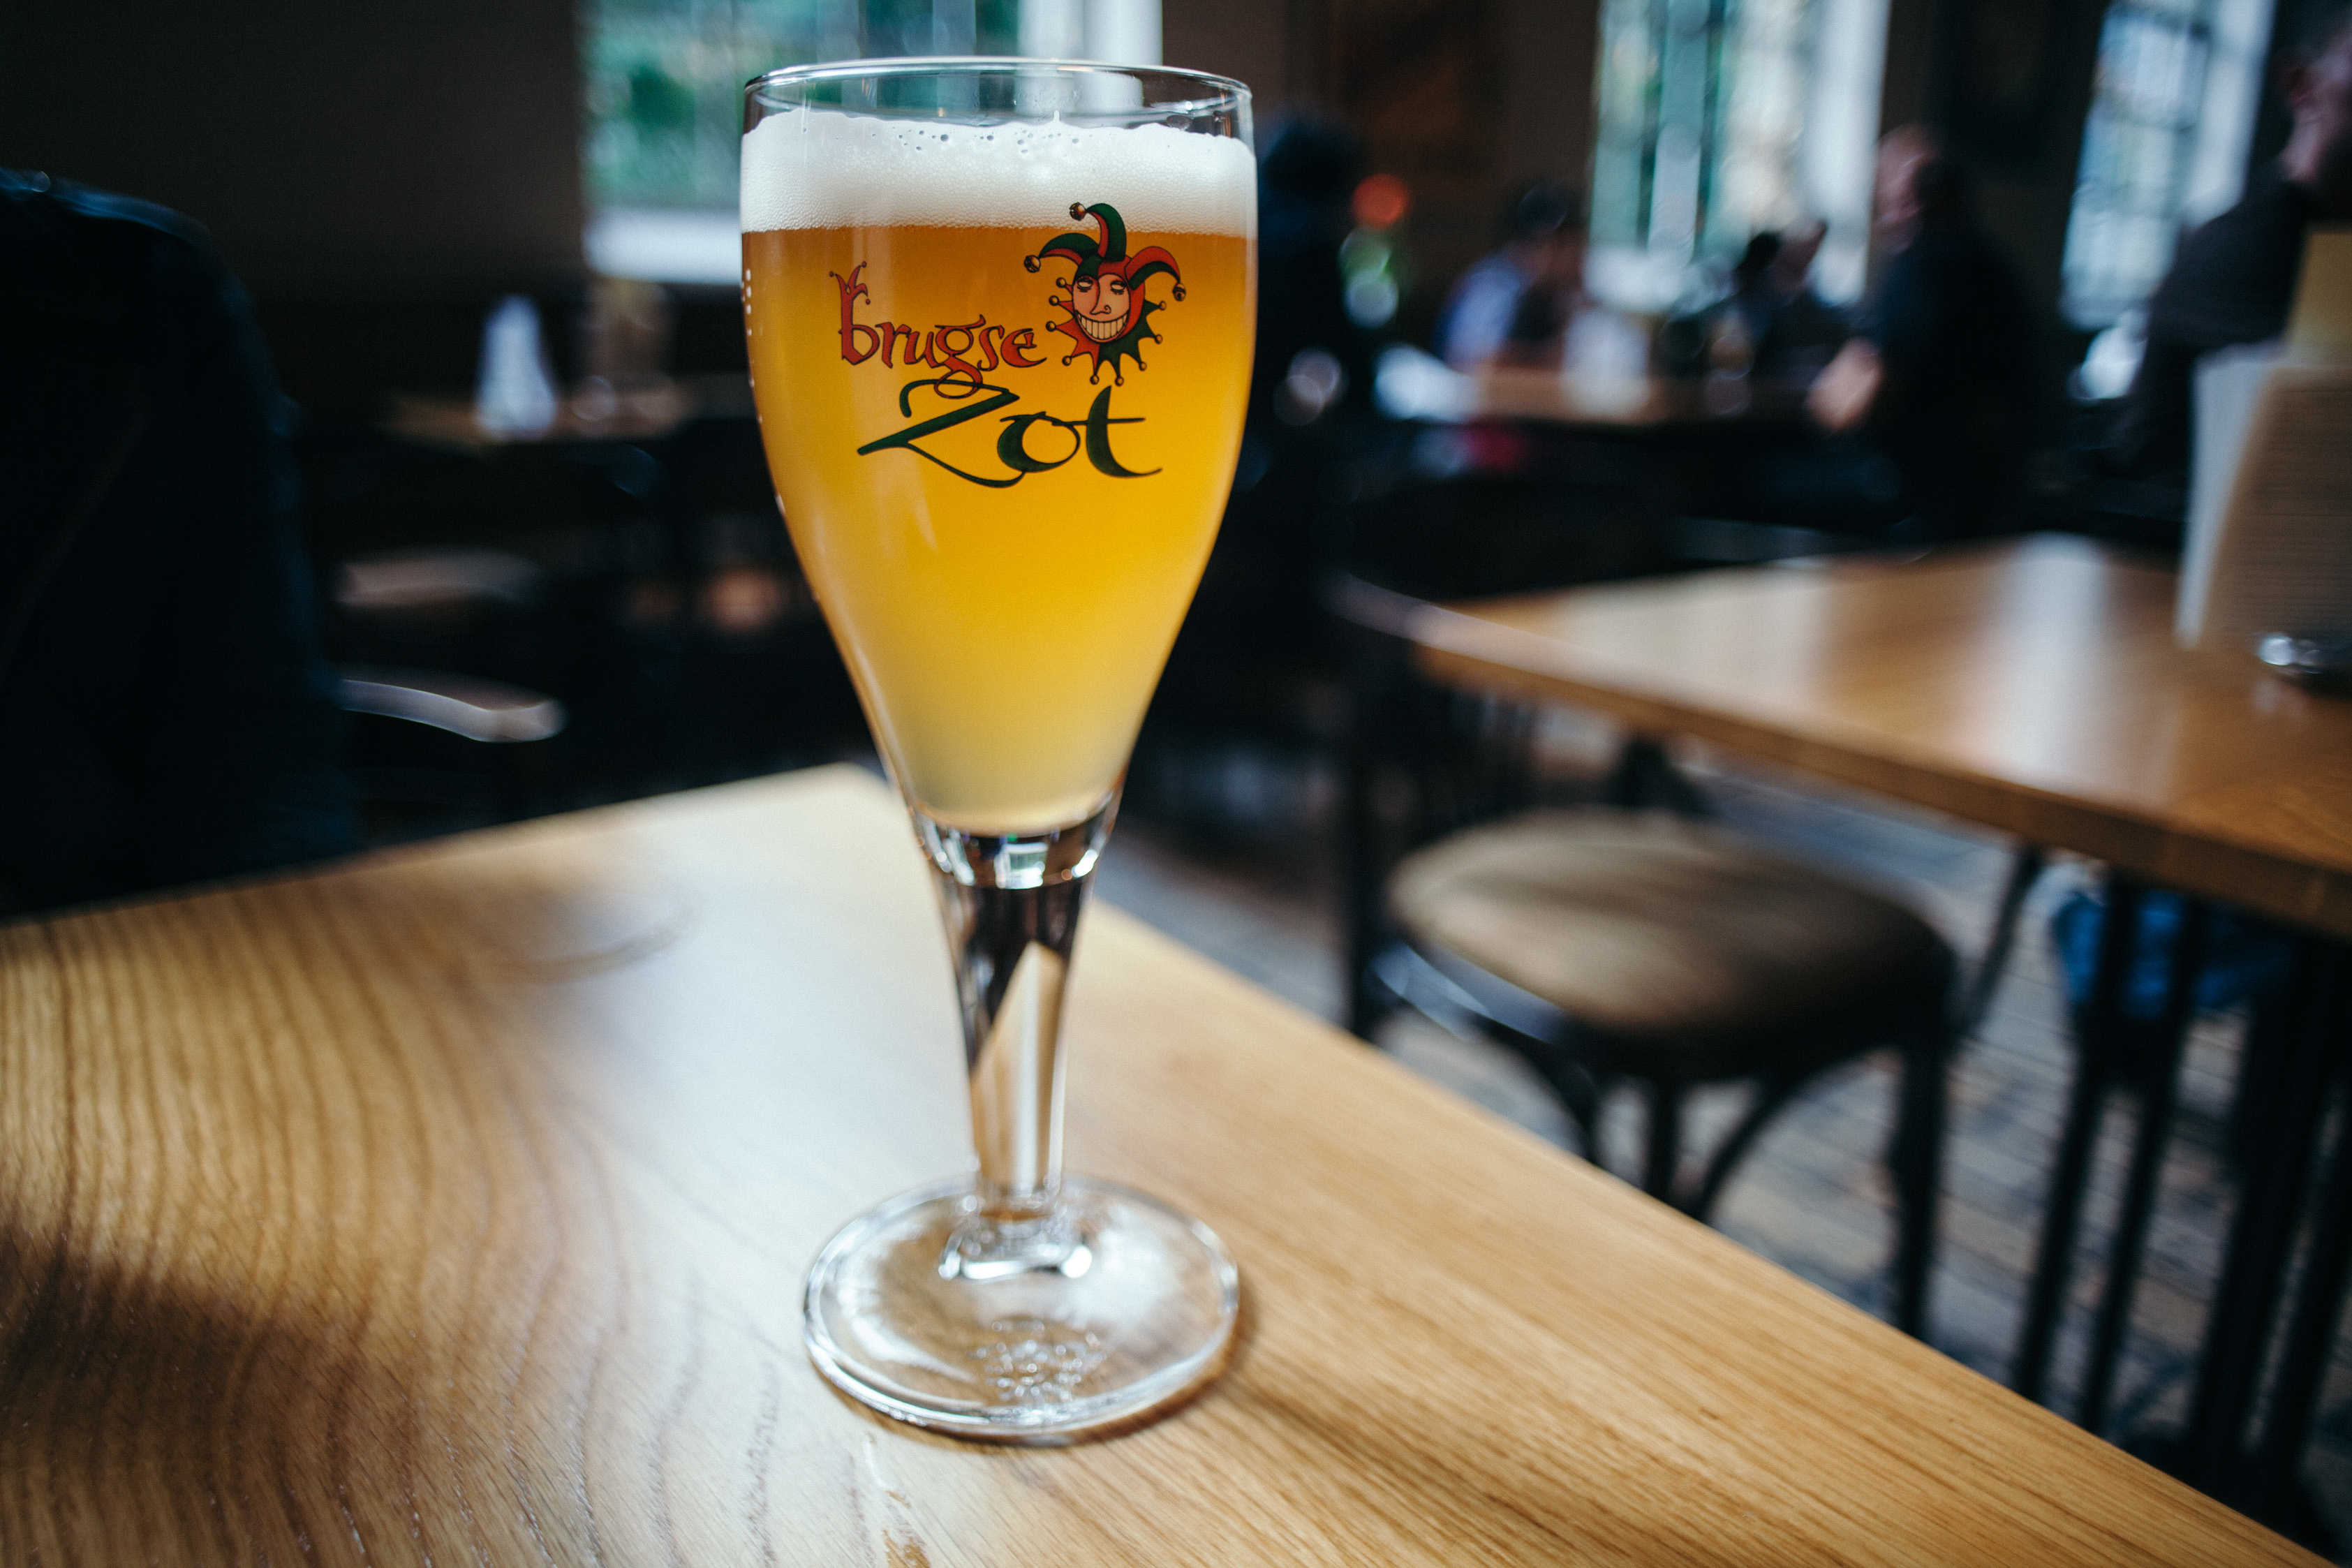 Brugse Zot glass of beer